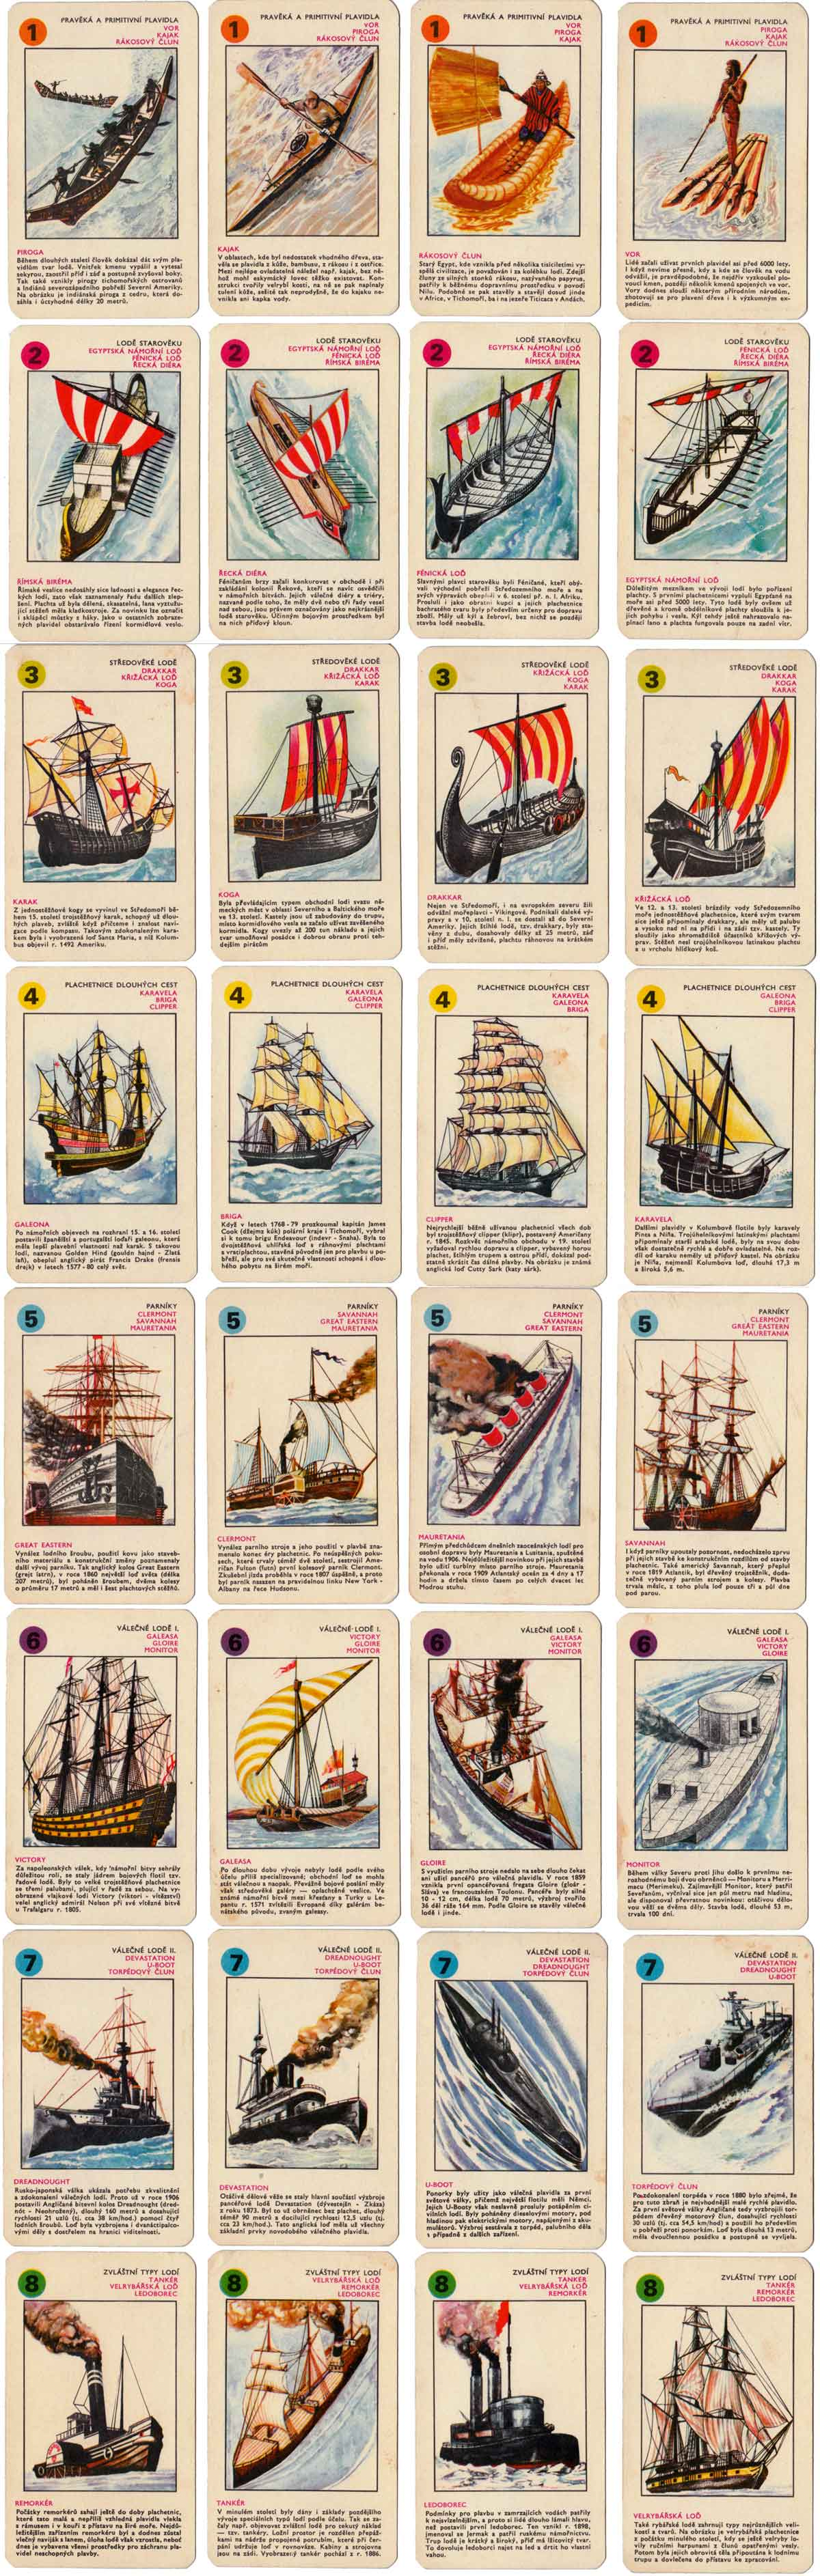 Historic Ships quartet game from Czechoslovakia illustrated by Jaromír Vraštil